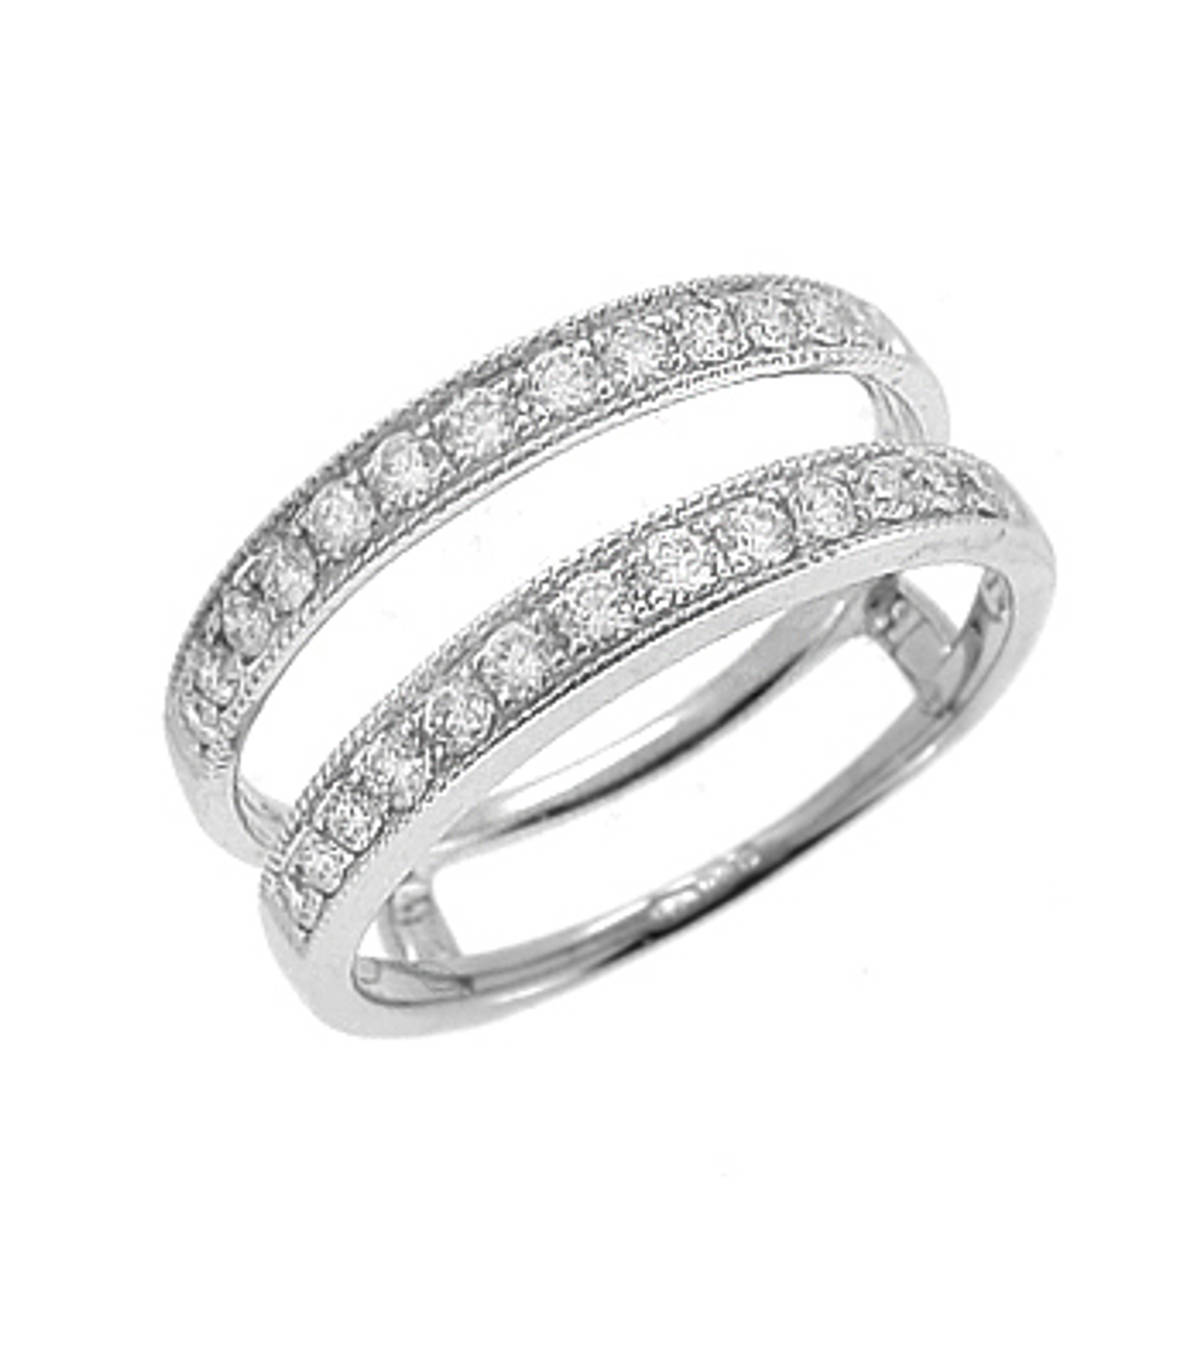 18k white gold brilliant cut diamond keeper ring Total diamond weight 0.43cts 18k white gold